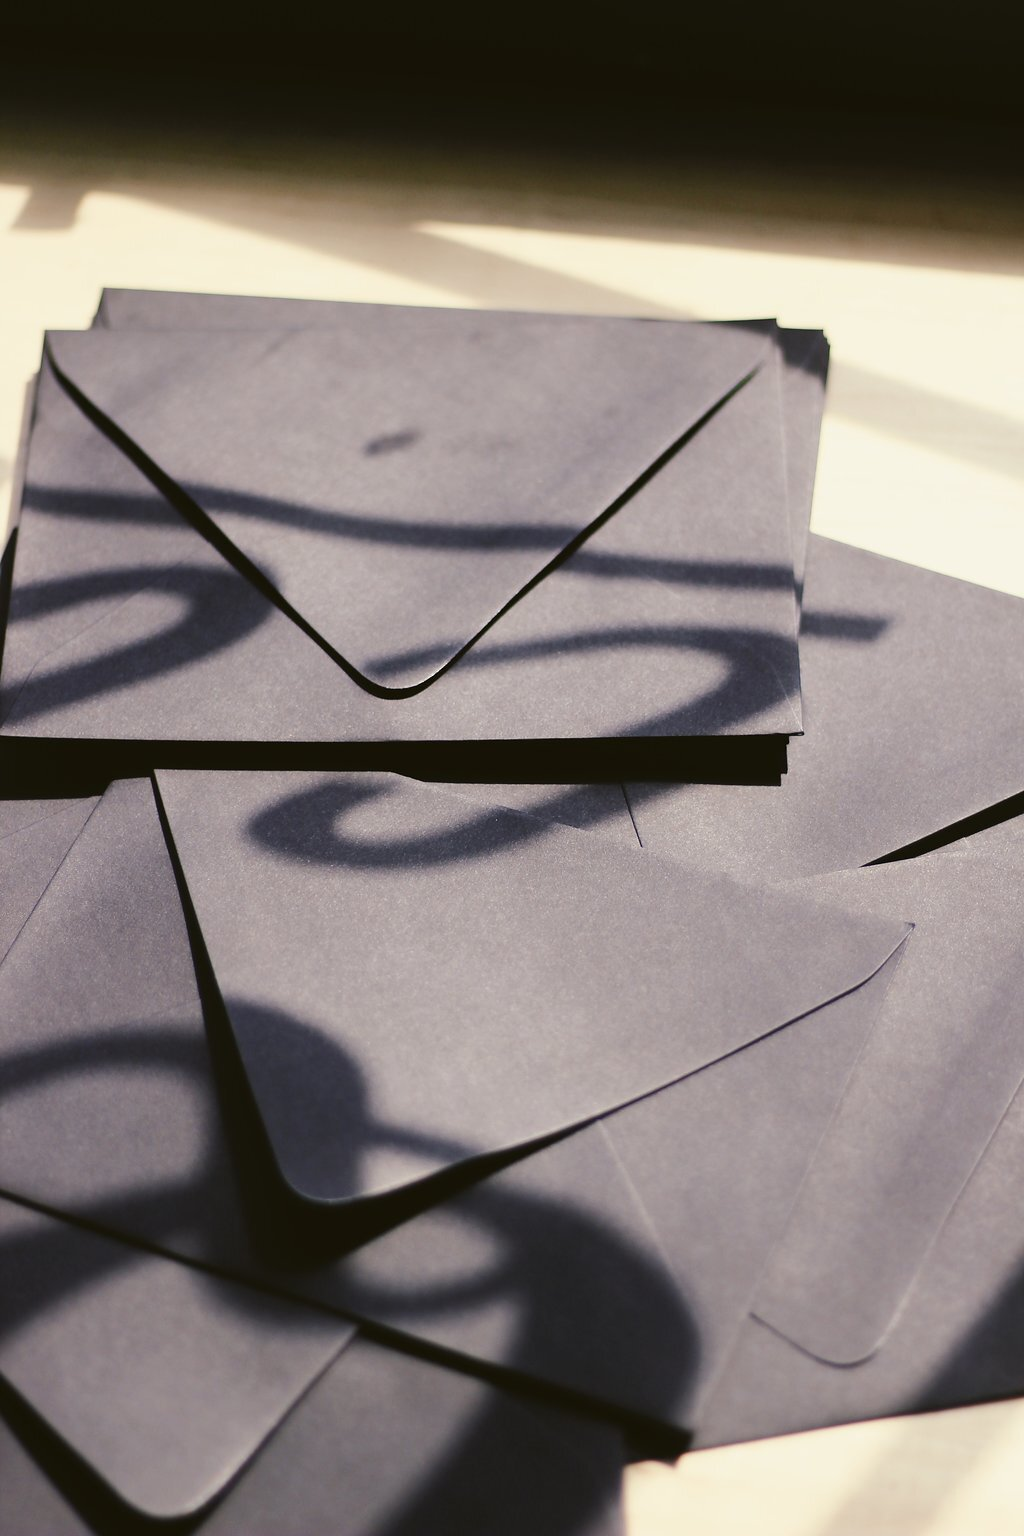 ew-stationery-envelopes